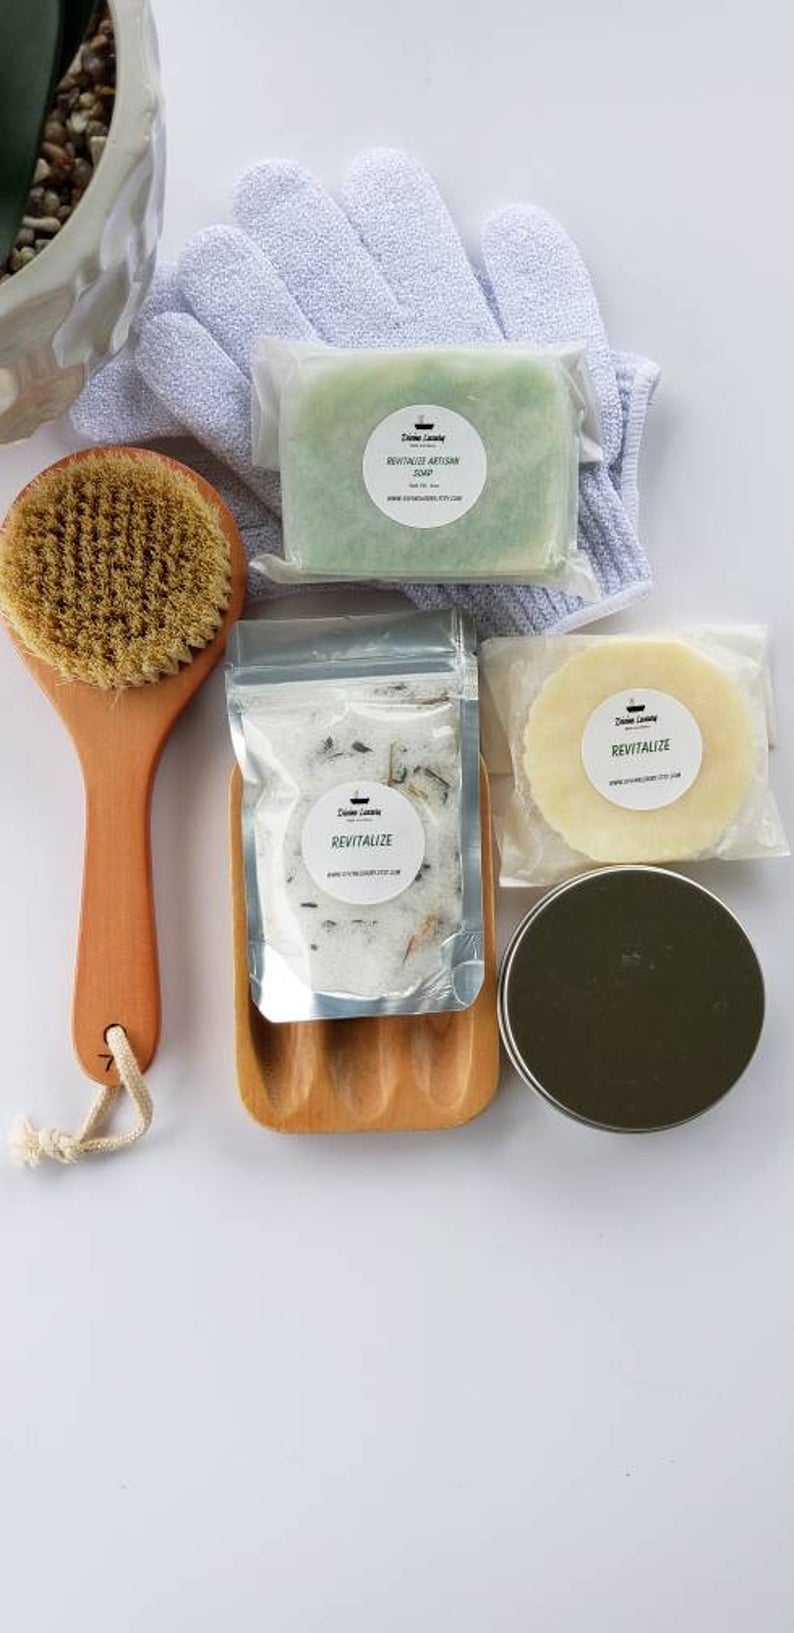 The Bath Essentials Set